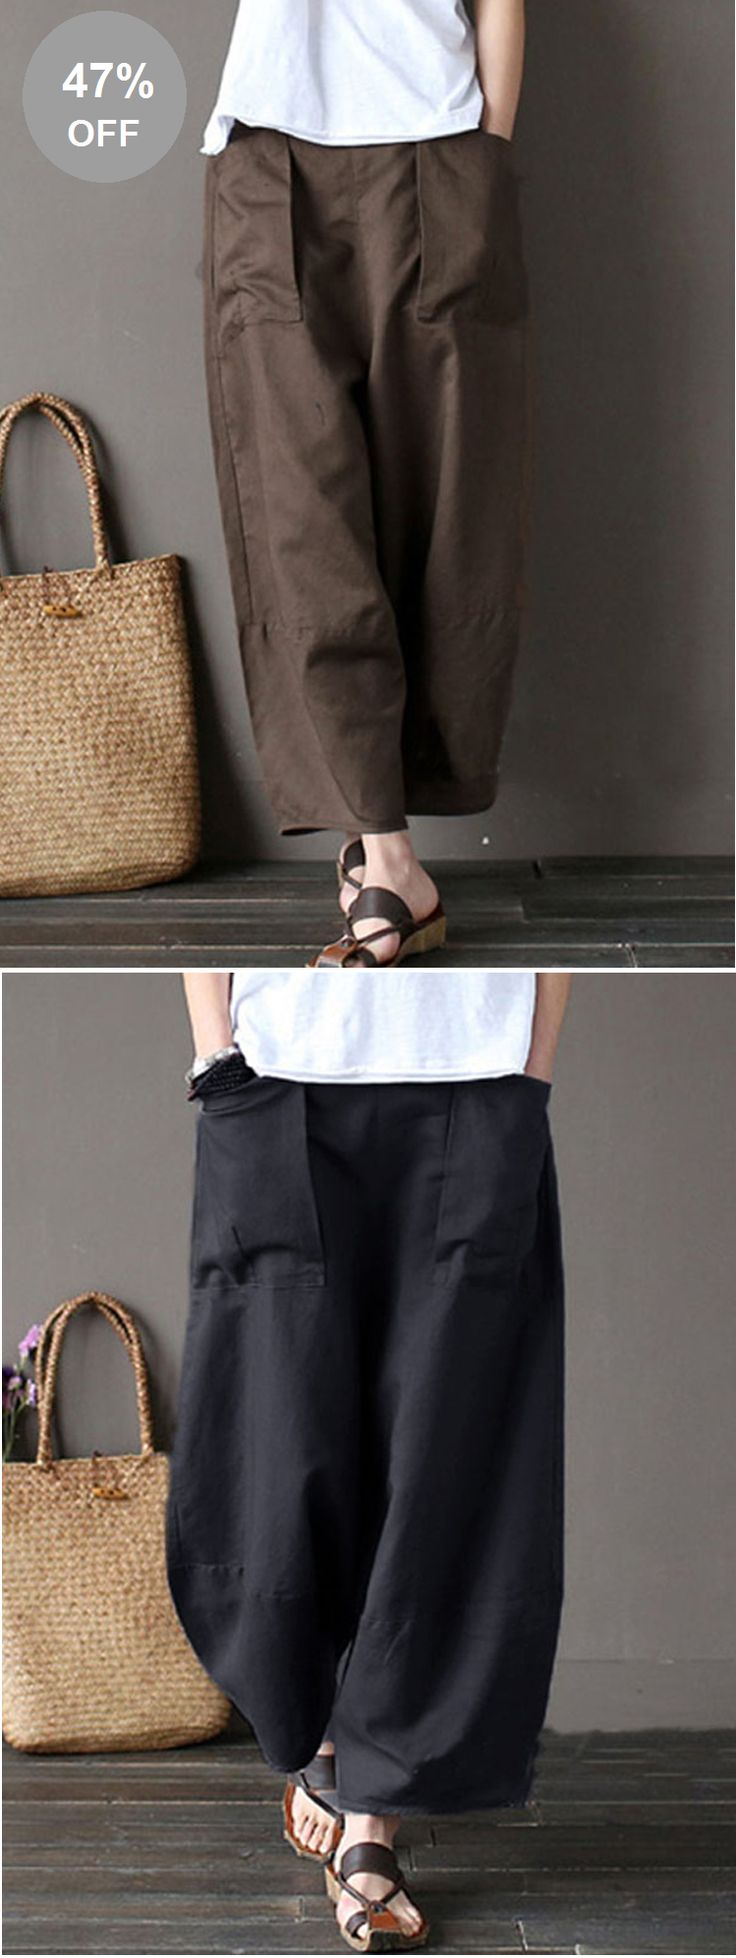 47% OFF! US$25.99 Plus Size Casual Pure Color Wide Leg Elastic Waist Pants For Women. SHOP NOW!